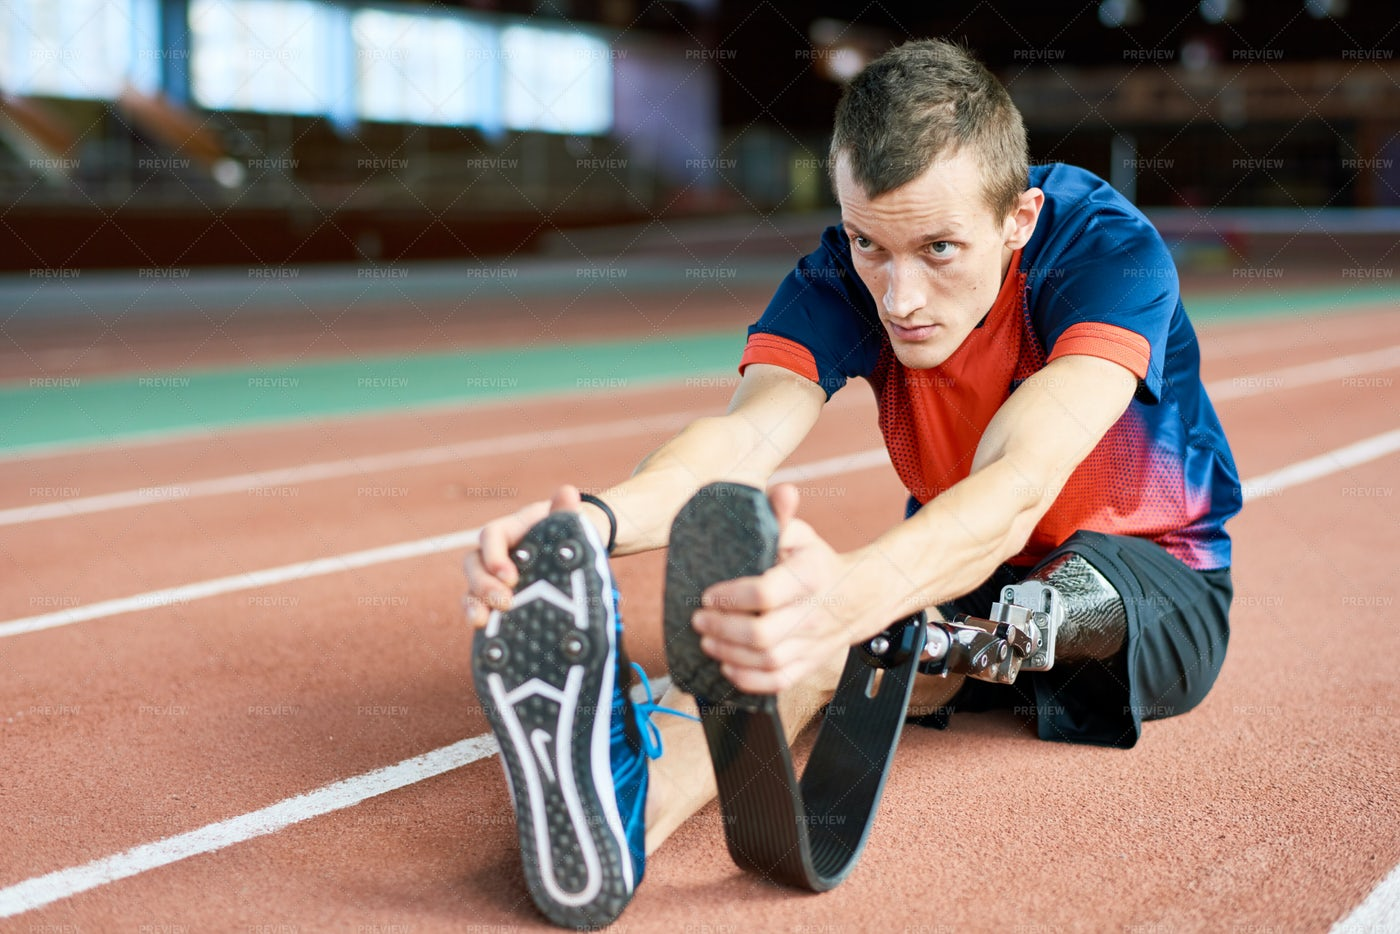 Handicapped Sportsman Stretching In...: Stock Photos